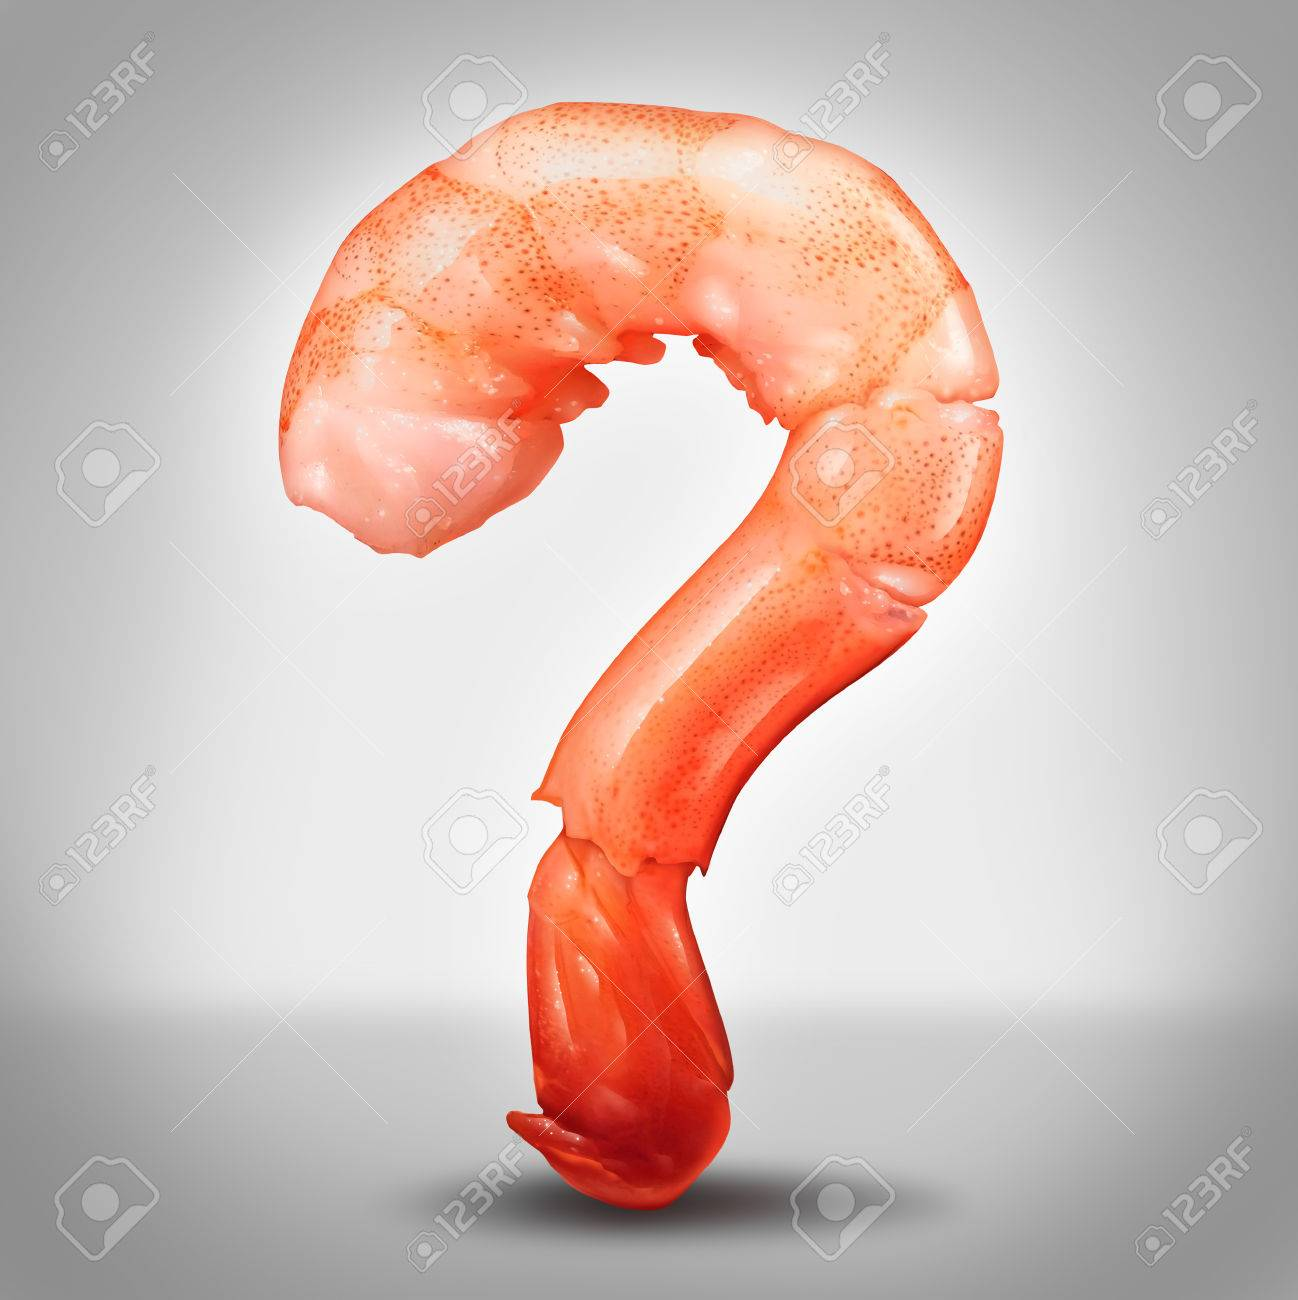 food safety icon stock photos pictures royalty food safety food safety icon seafood questions concept as a shrimp in a close up view in